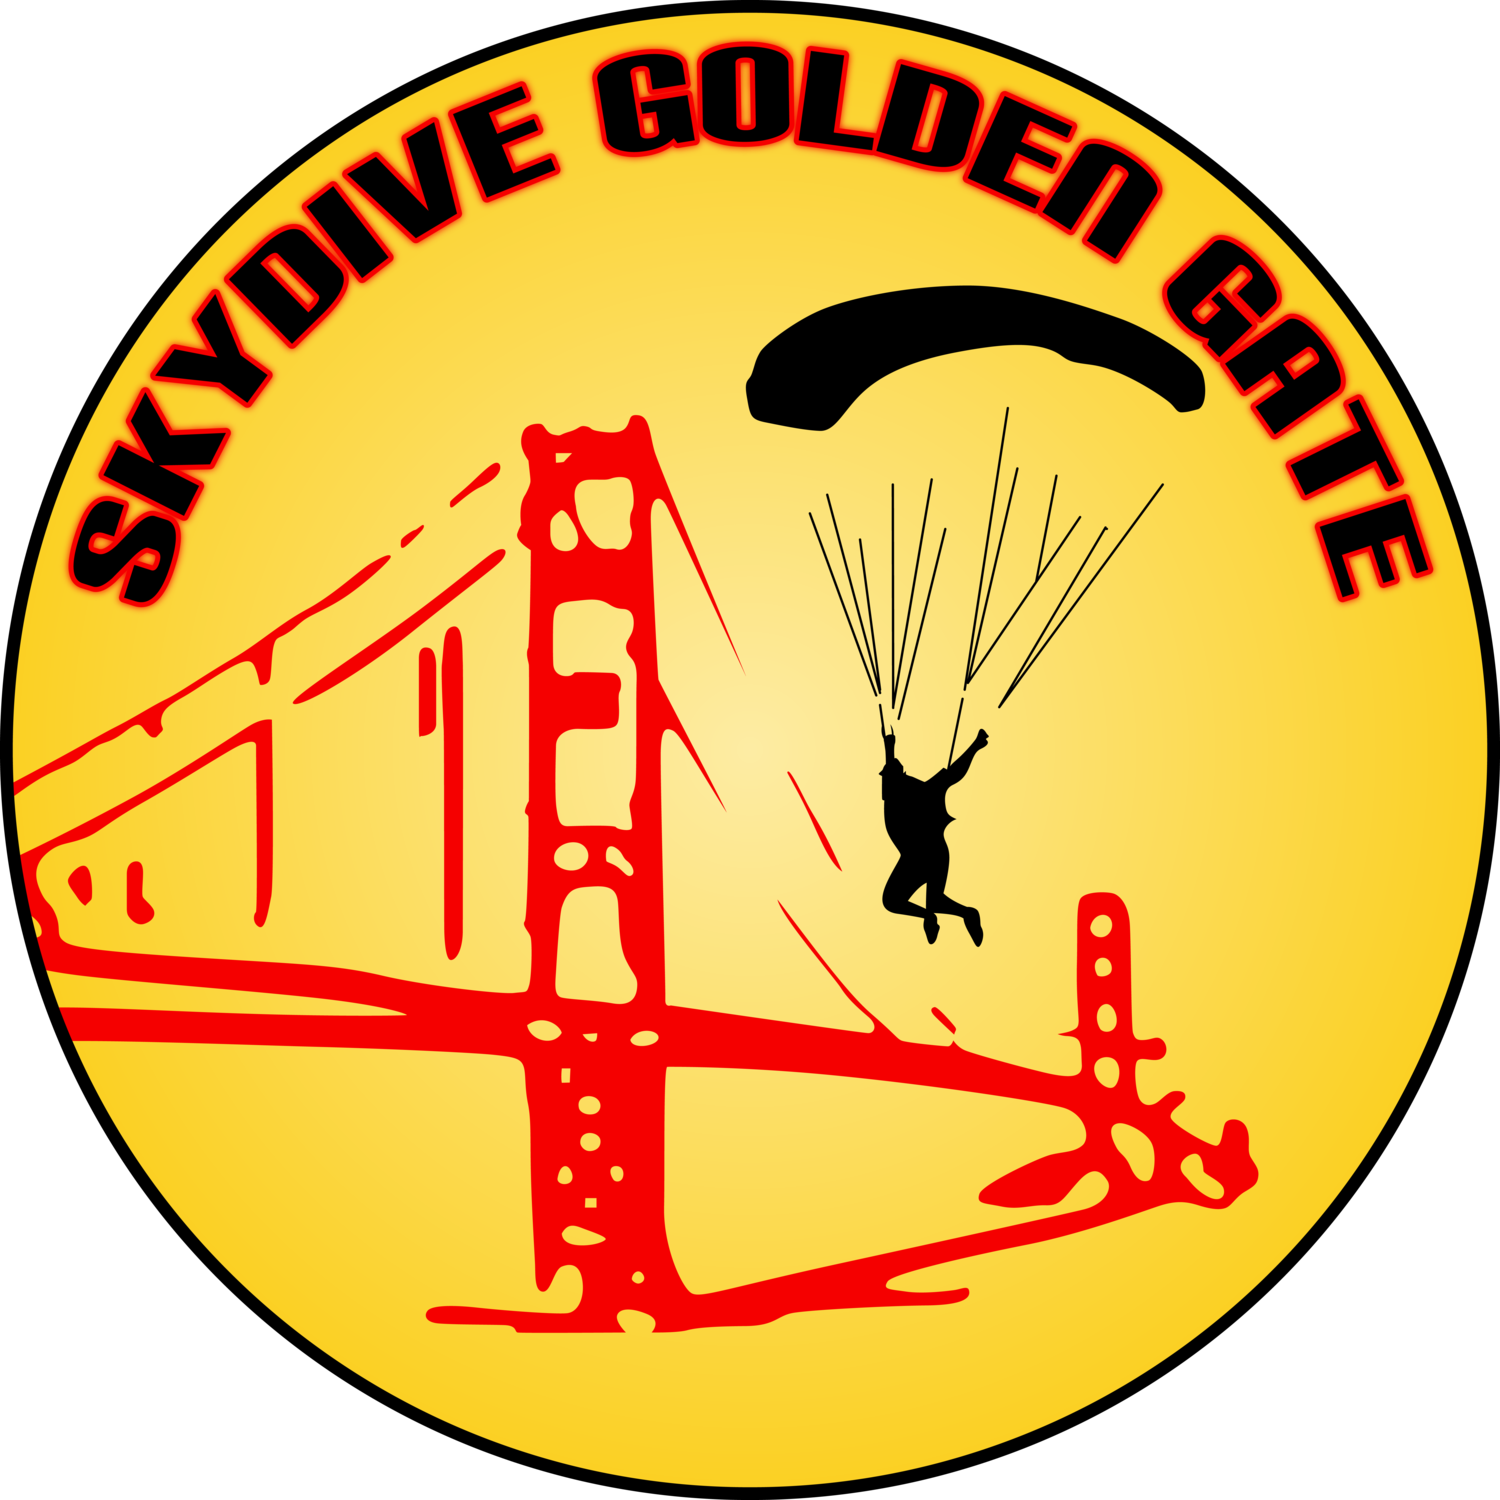 Skydive Golden Gate